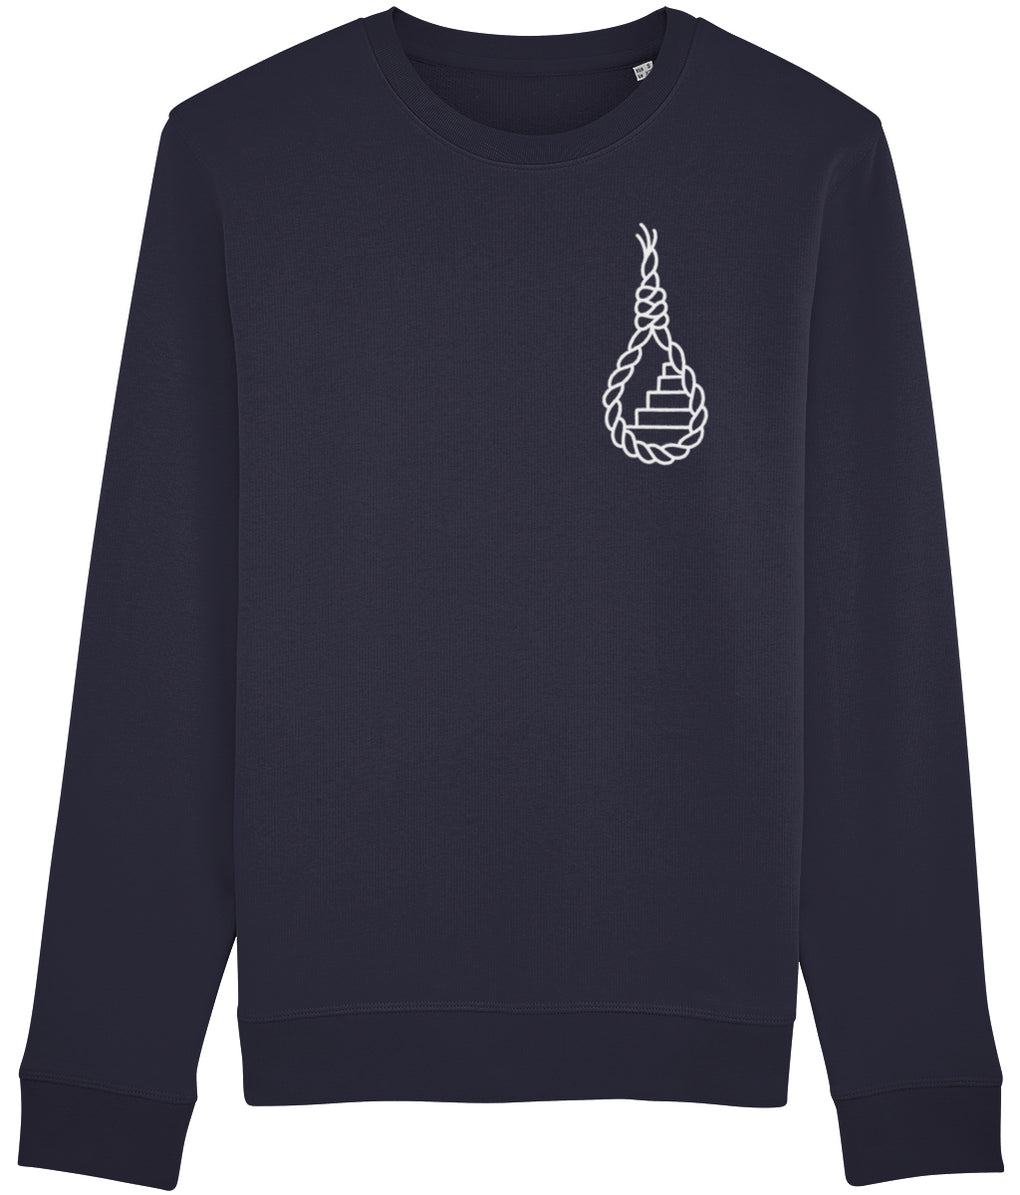 Sailor Knot Navy Sweatshirt (Unisex)